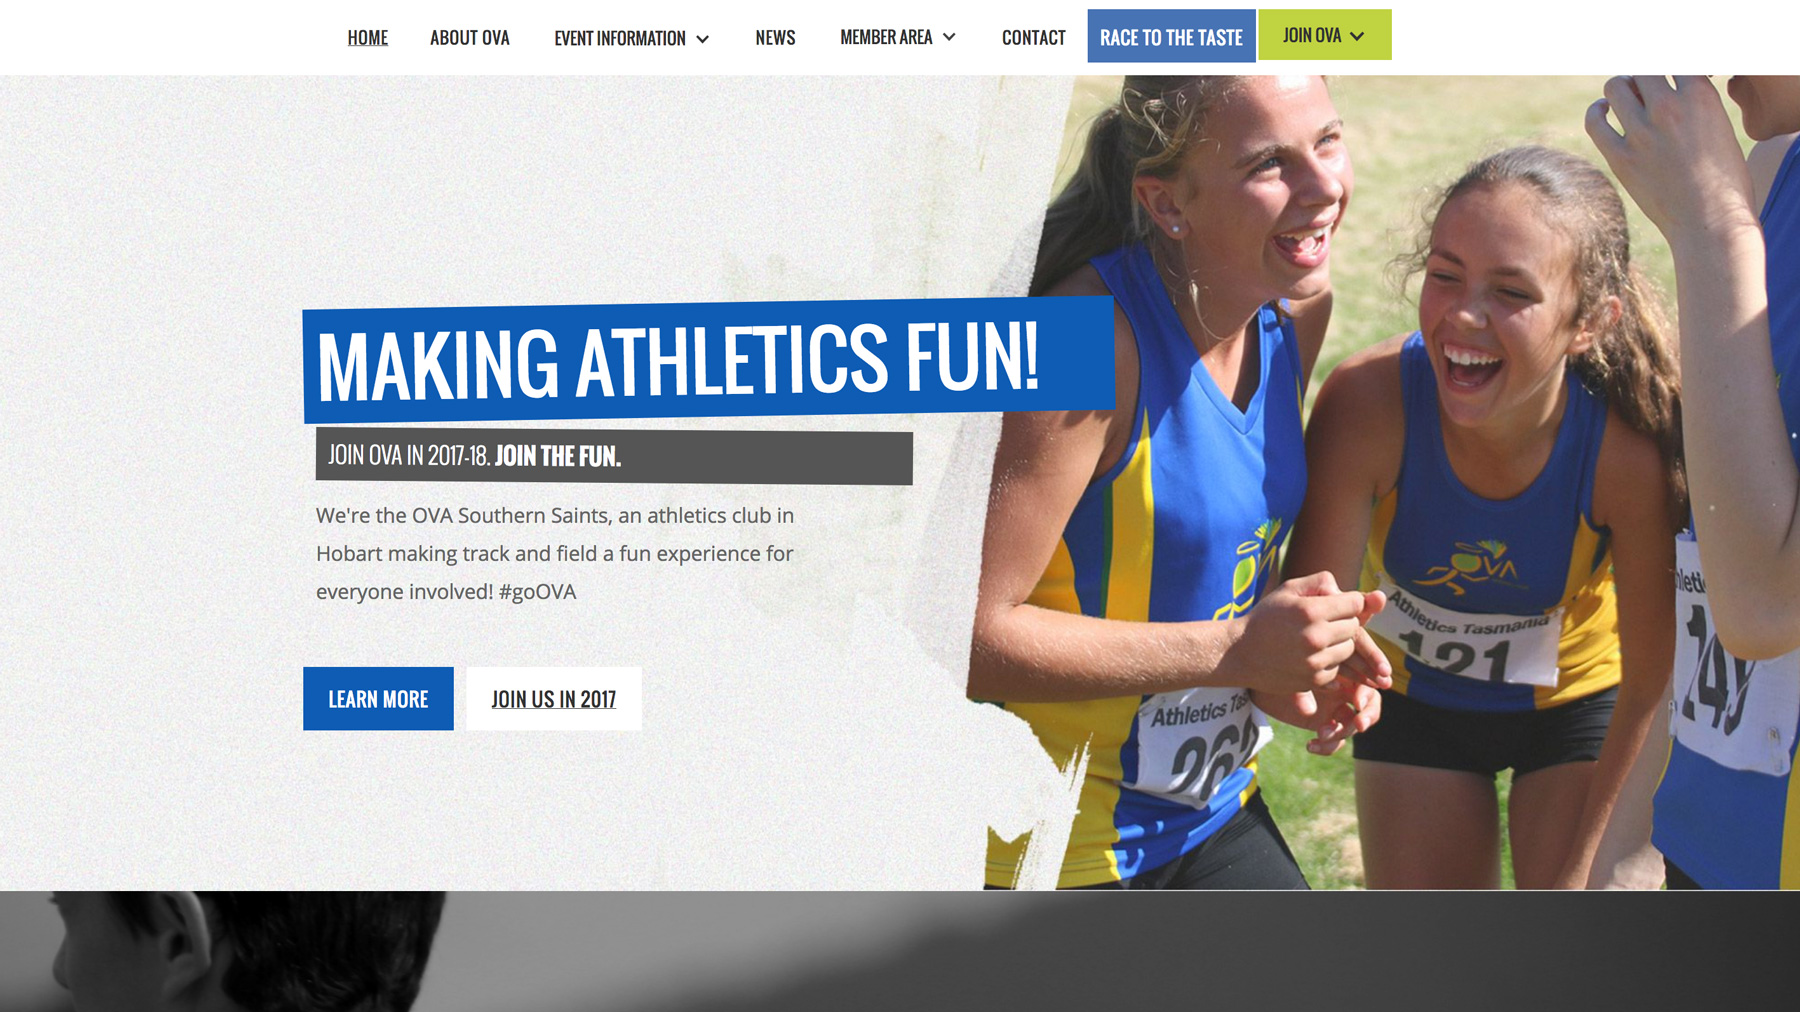 The OVA Southern Saints website enhances the clubs physical image to the online space.